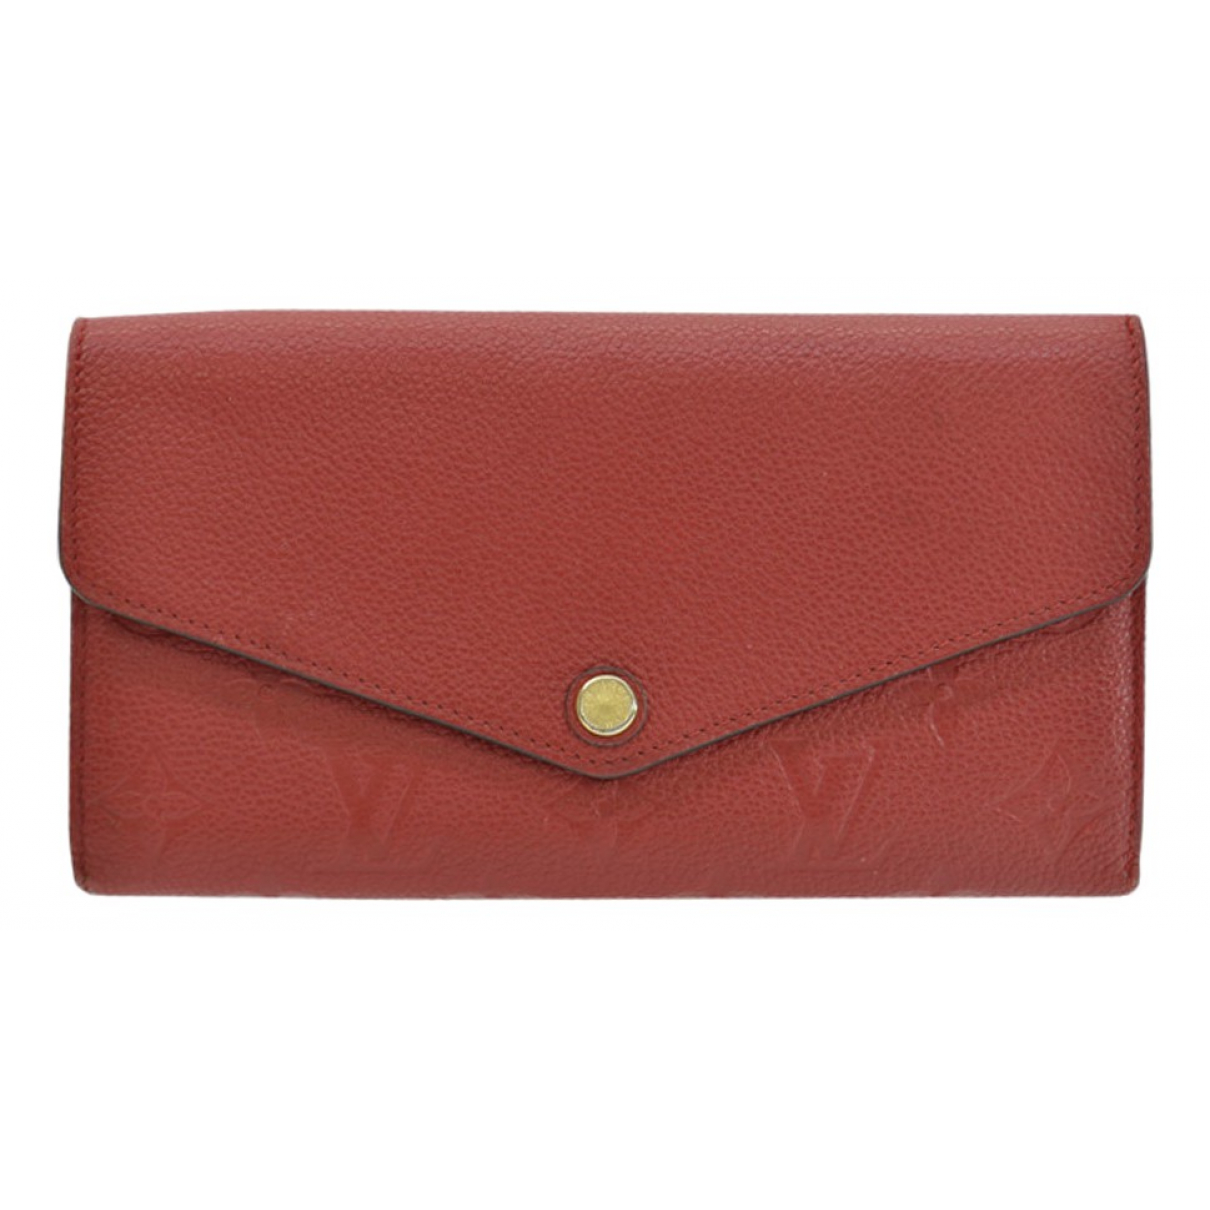 Louis Vuitton Sarah Portemonnaie in  Rot Leder